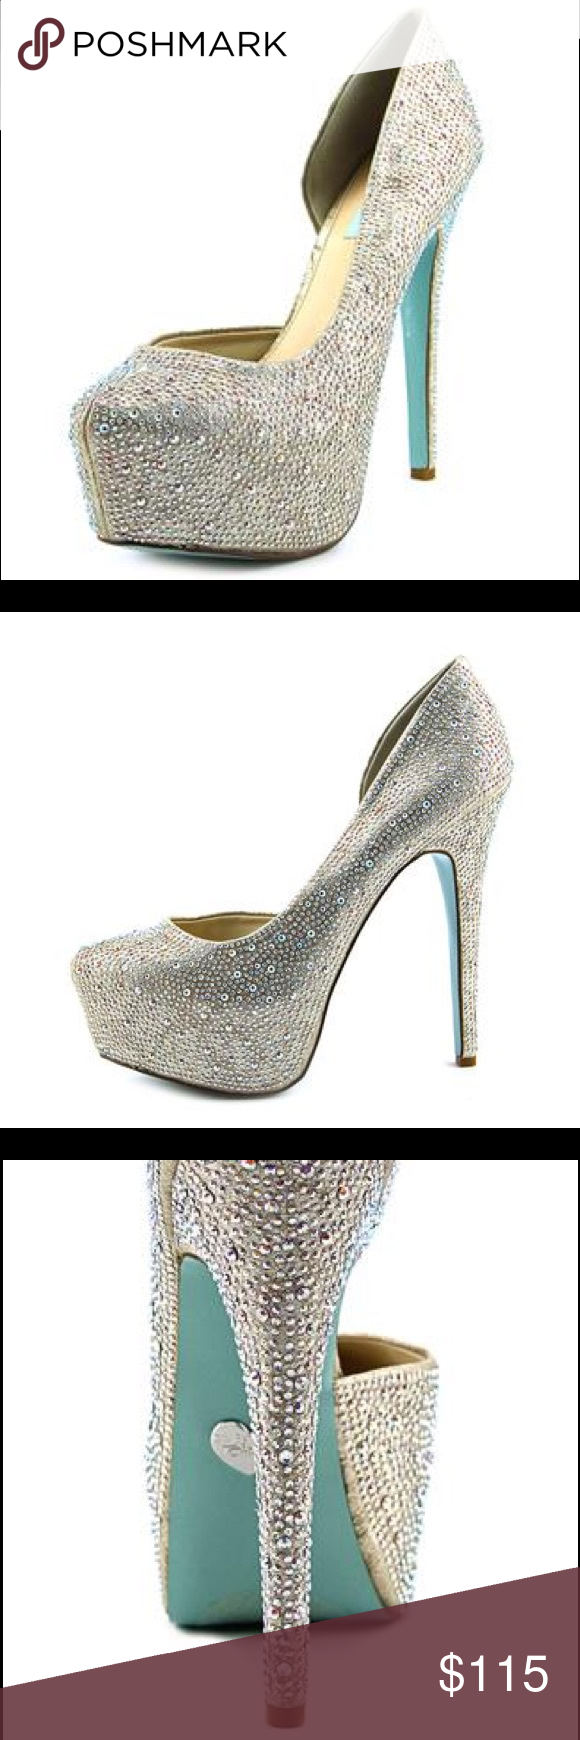 Betsey Johnson Blue Heels- Star 5 (crystal) Betsey Johnson Blue Heels- Crystal. Worn once for 5 minutes so they're new! Comes with replacement crystals as well. Great for prom, weddings, parties, etc! Champagne base with individual crystals- works with silver or gold! Get the look of Strass Daffodil Louboutins for a percentage of the cost... Betsey Johnson Shoes Heels